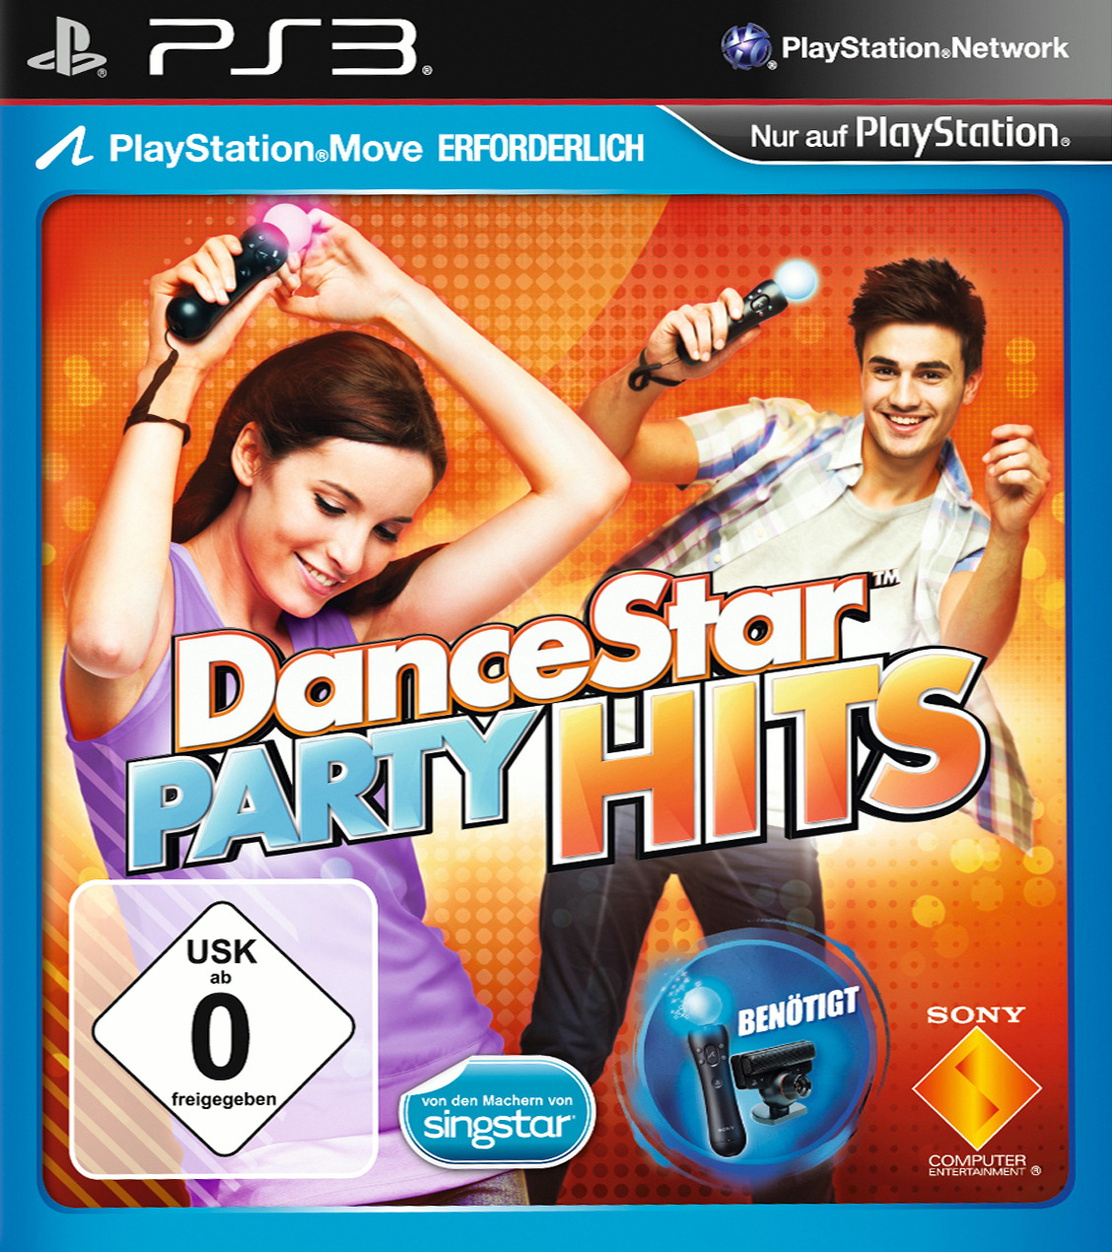 DanceStar Party Hits [Move erforderlich]